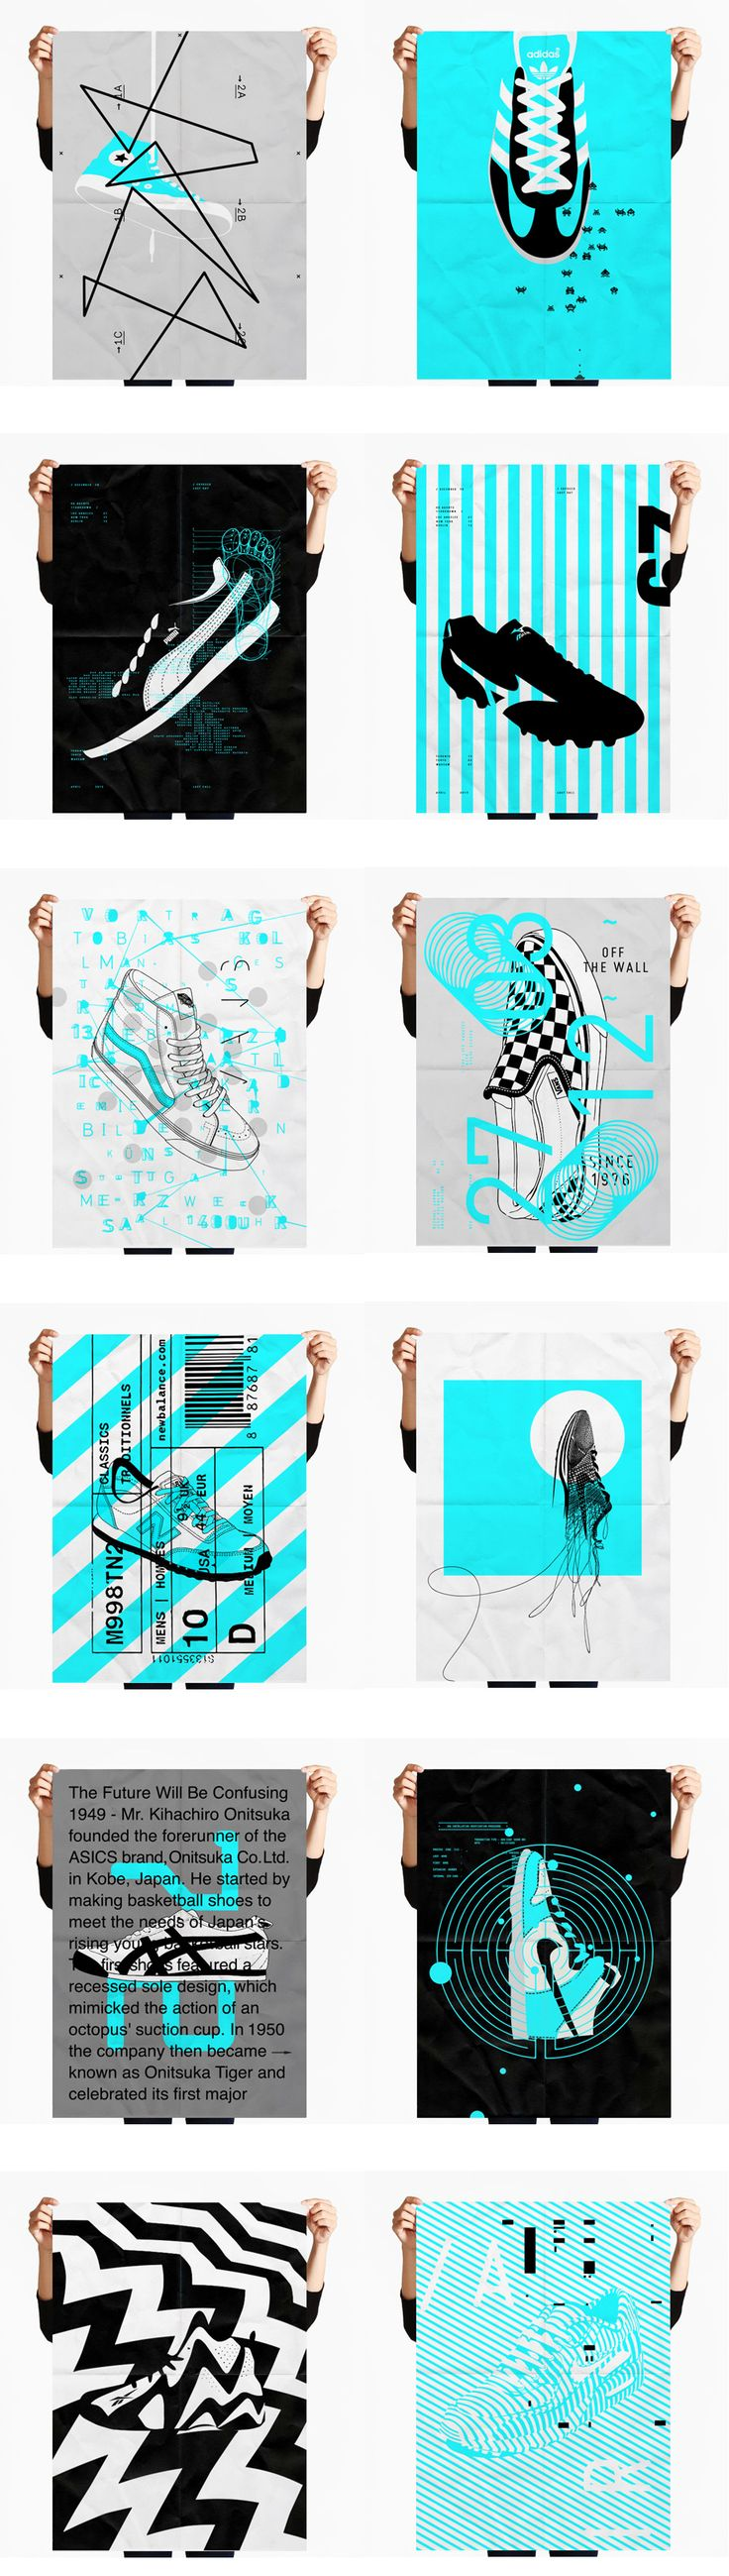 Poster design and printing - Personal Project Screen Printing Sneakers Poster Series